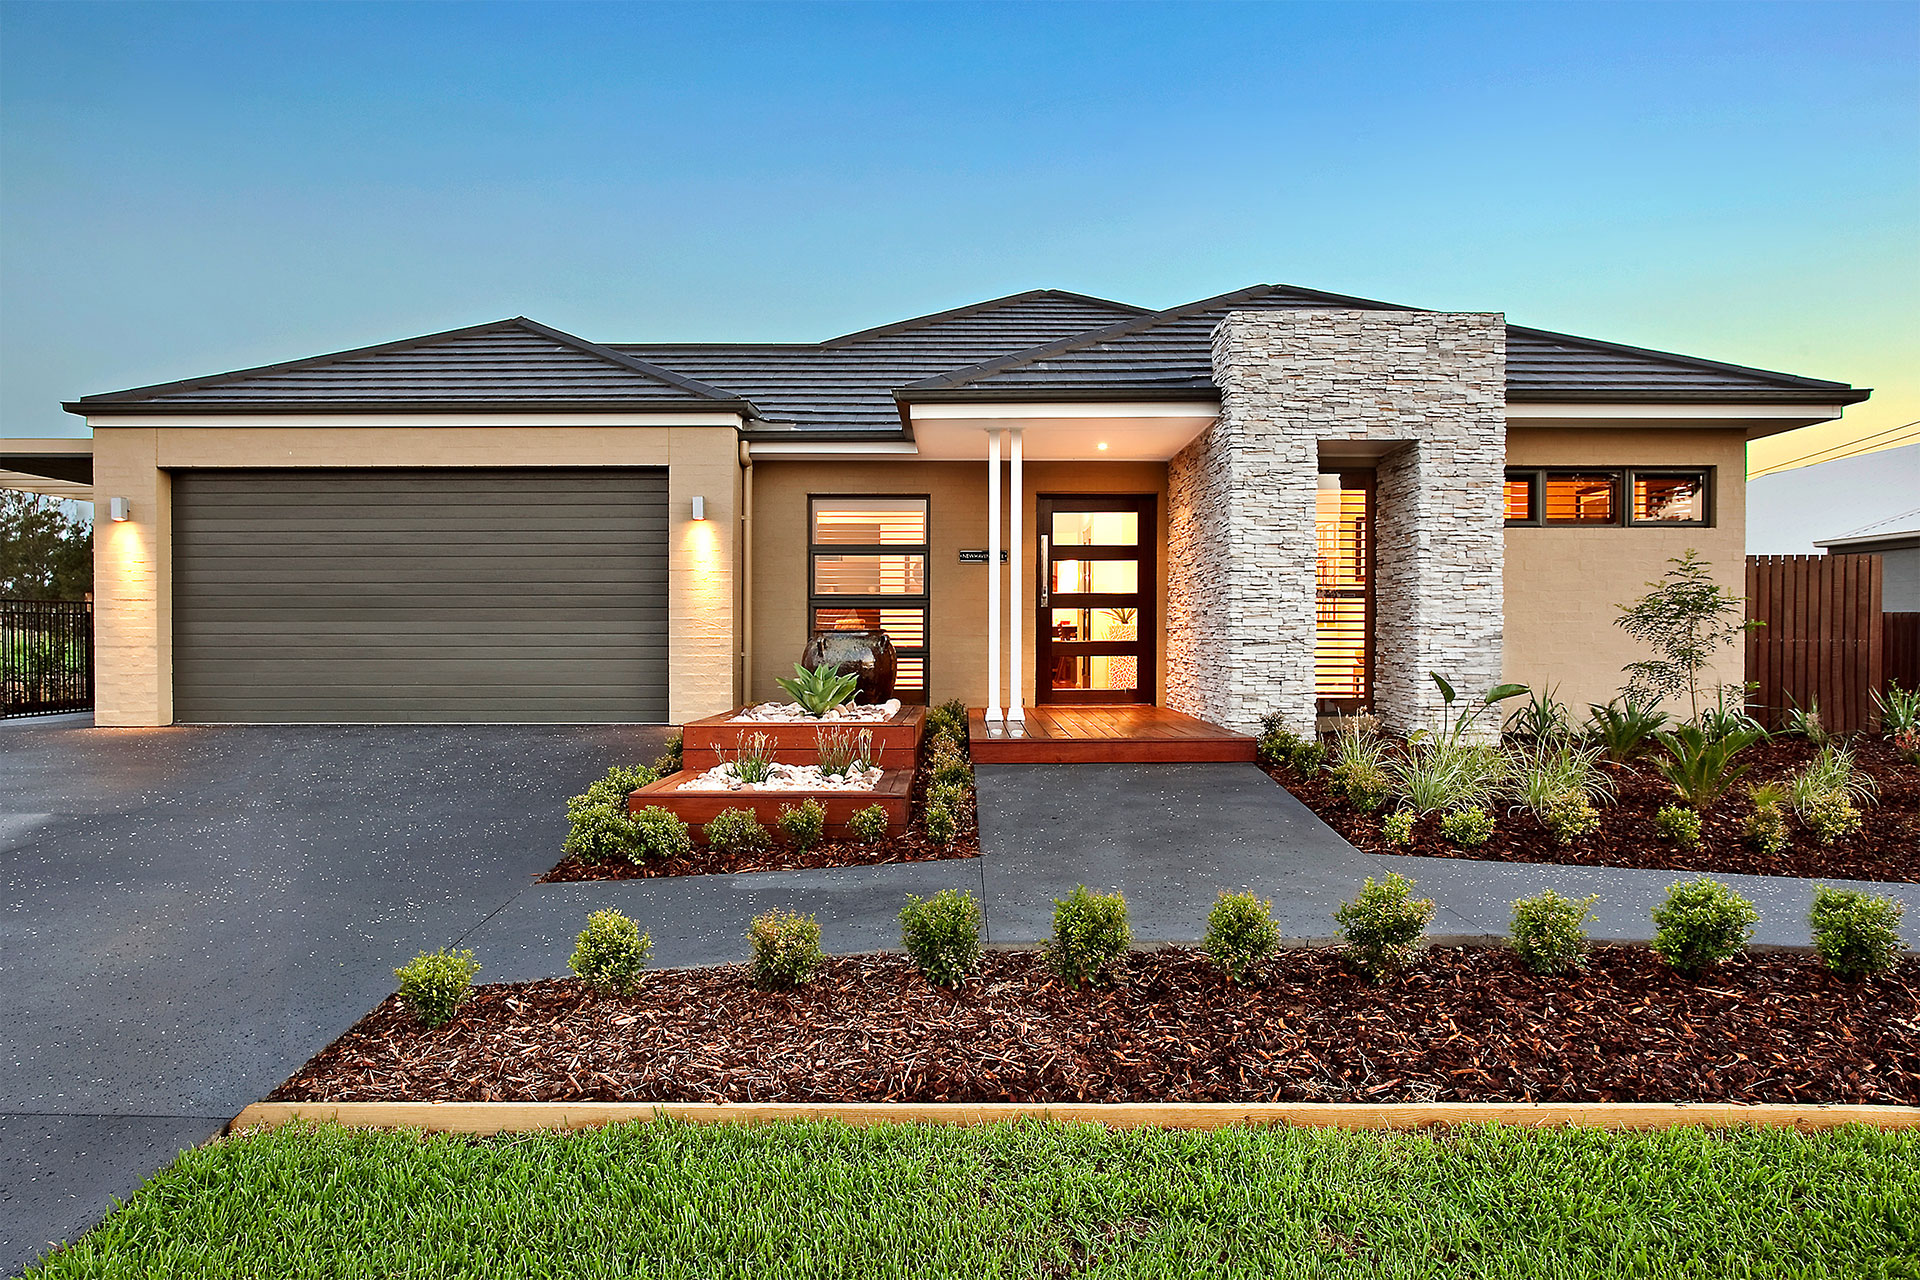 Tekinspect building pest pool inspections sydney for House pictures